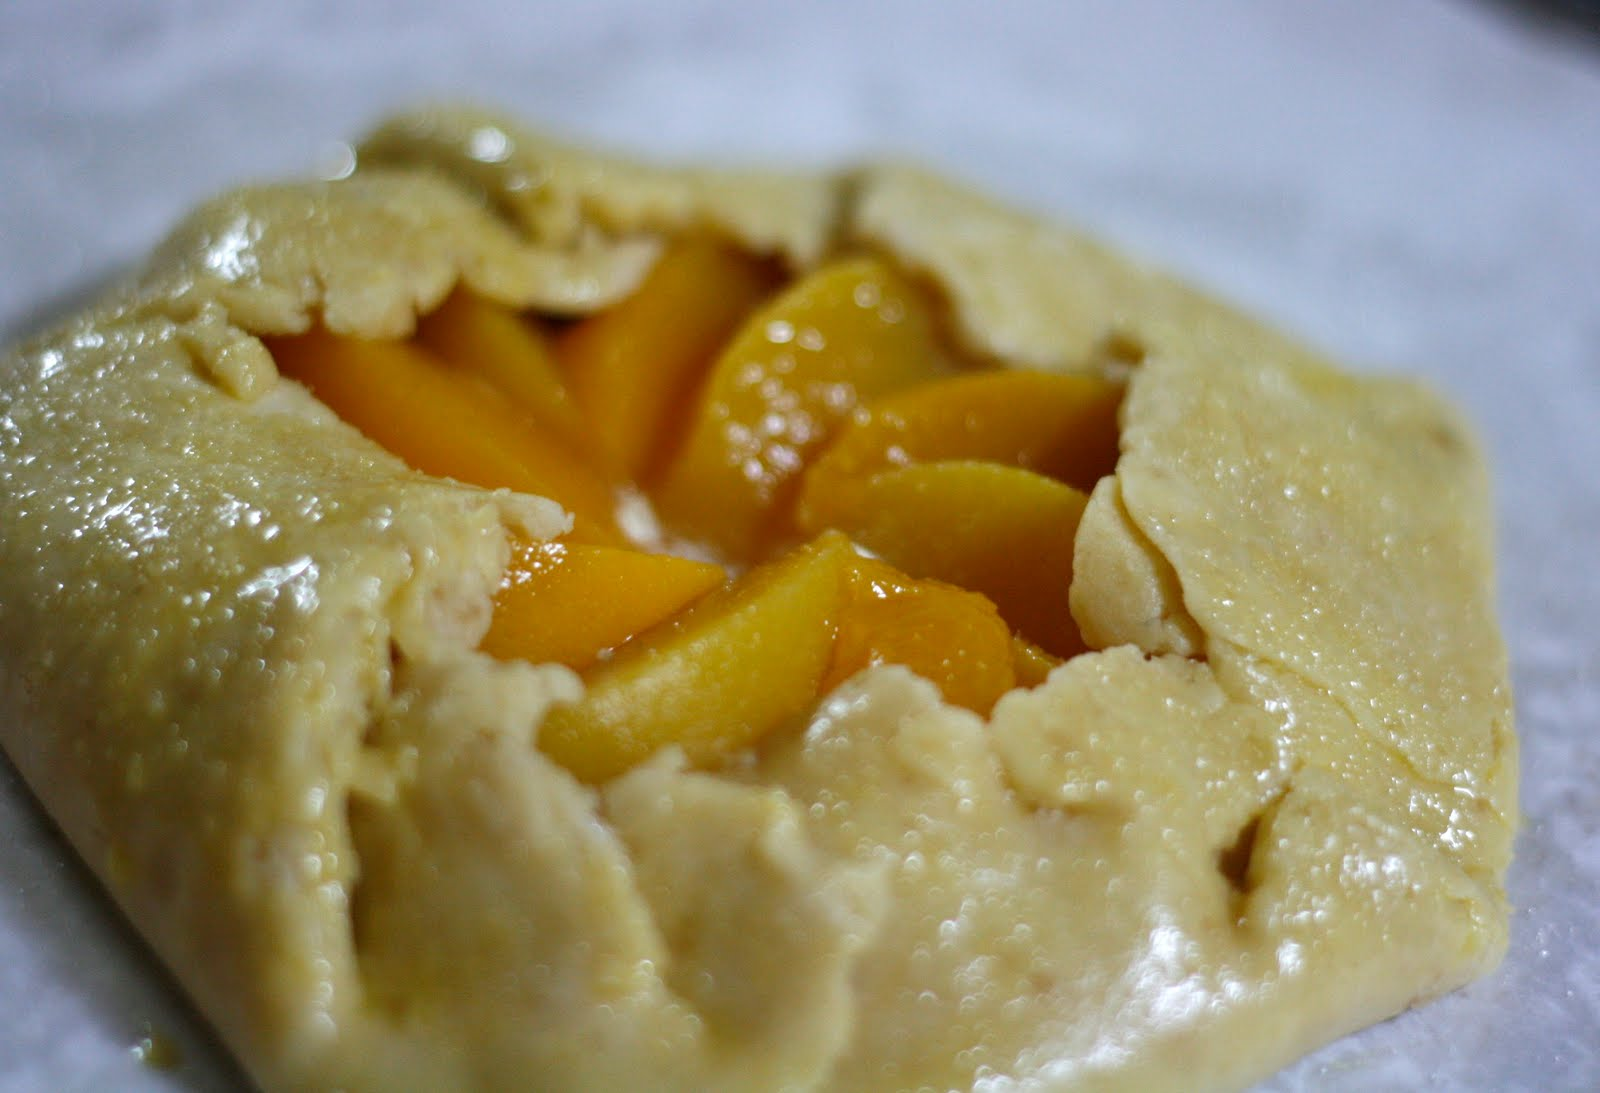 Pastry Philosophy: Peach Frangipane Galette